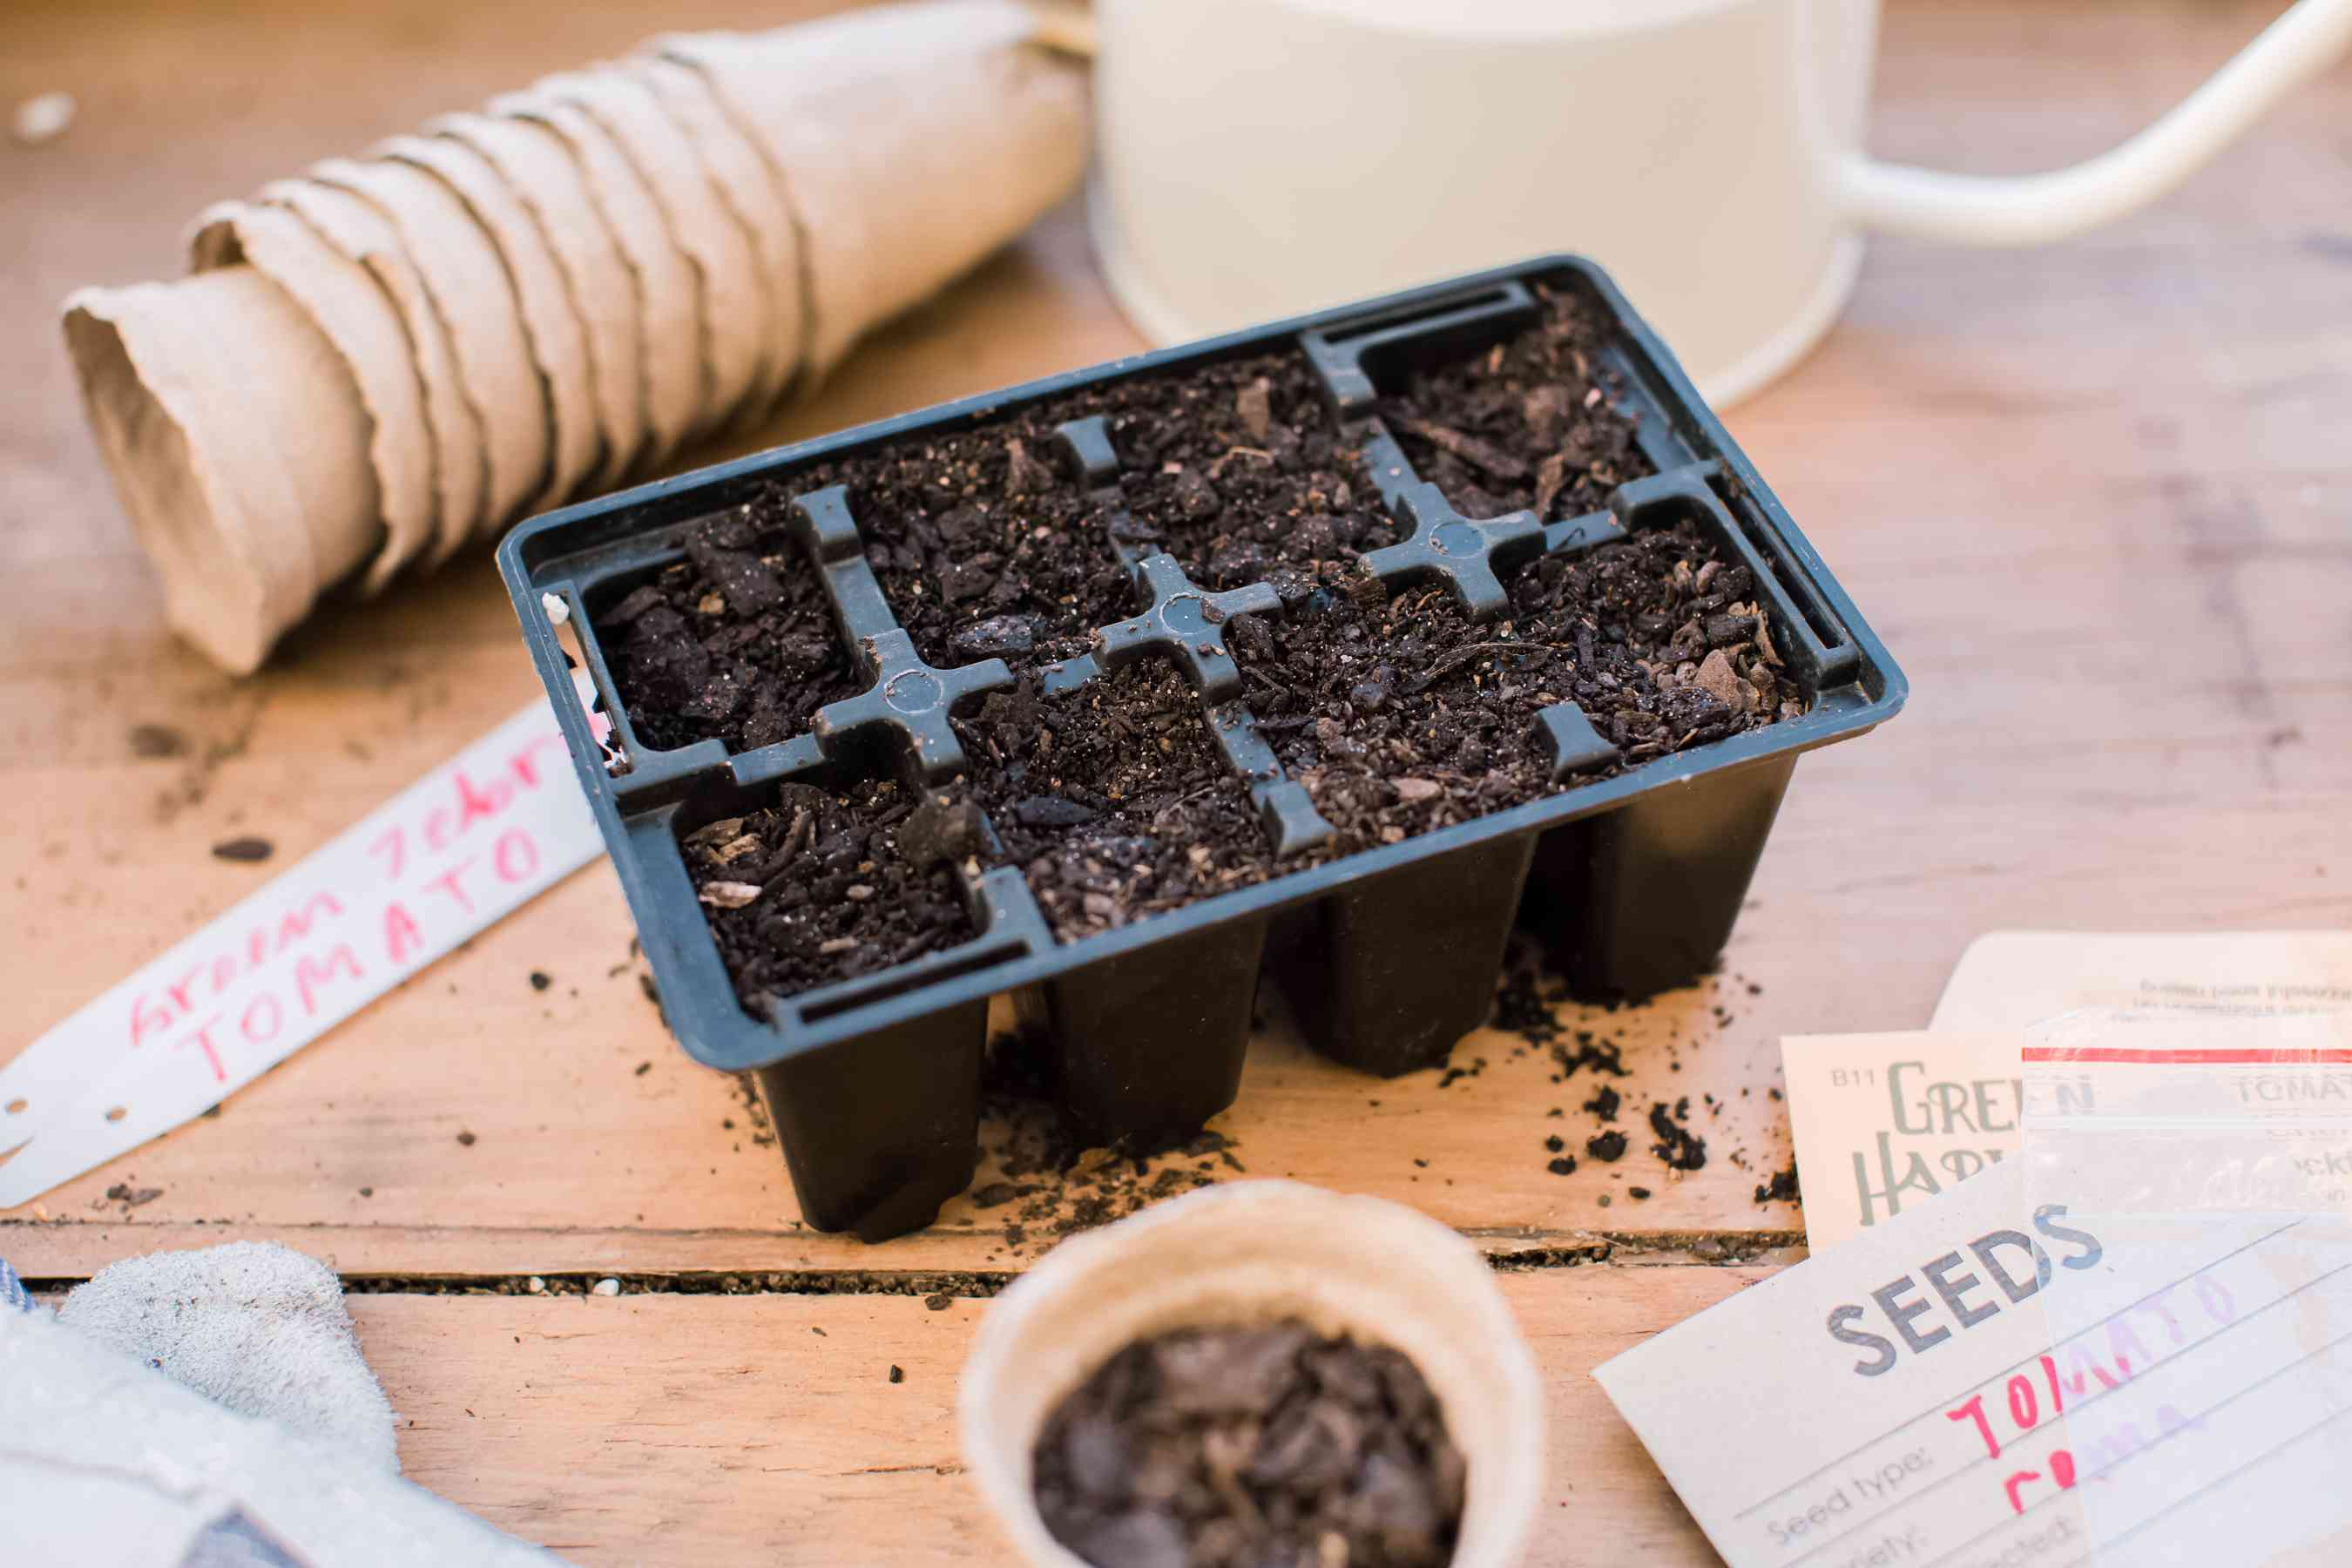 preparing the containers for planting